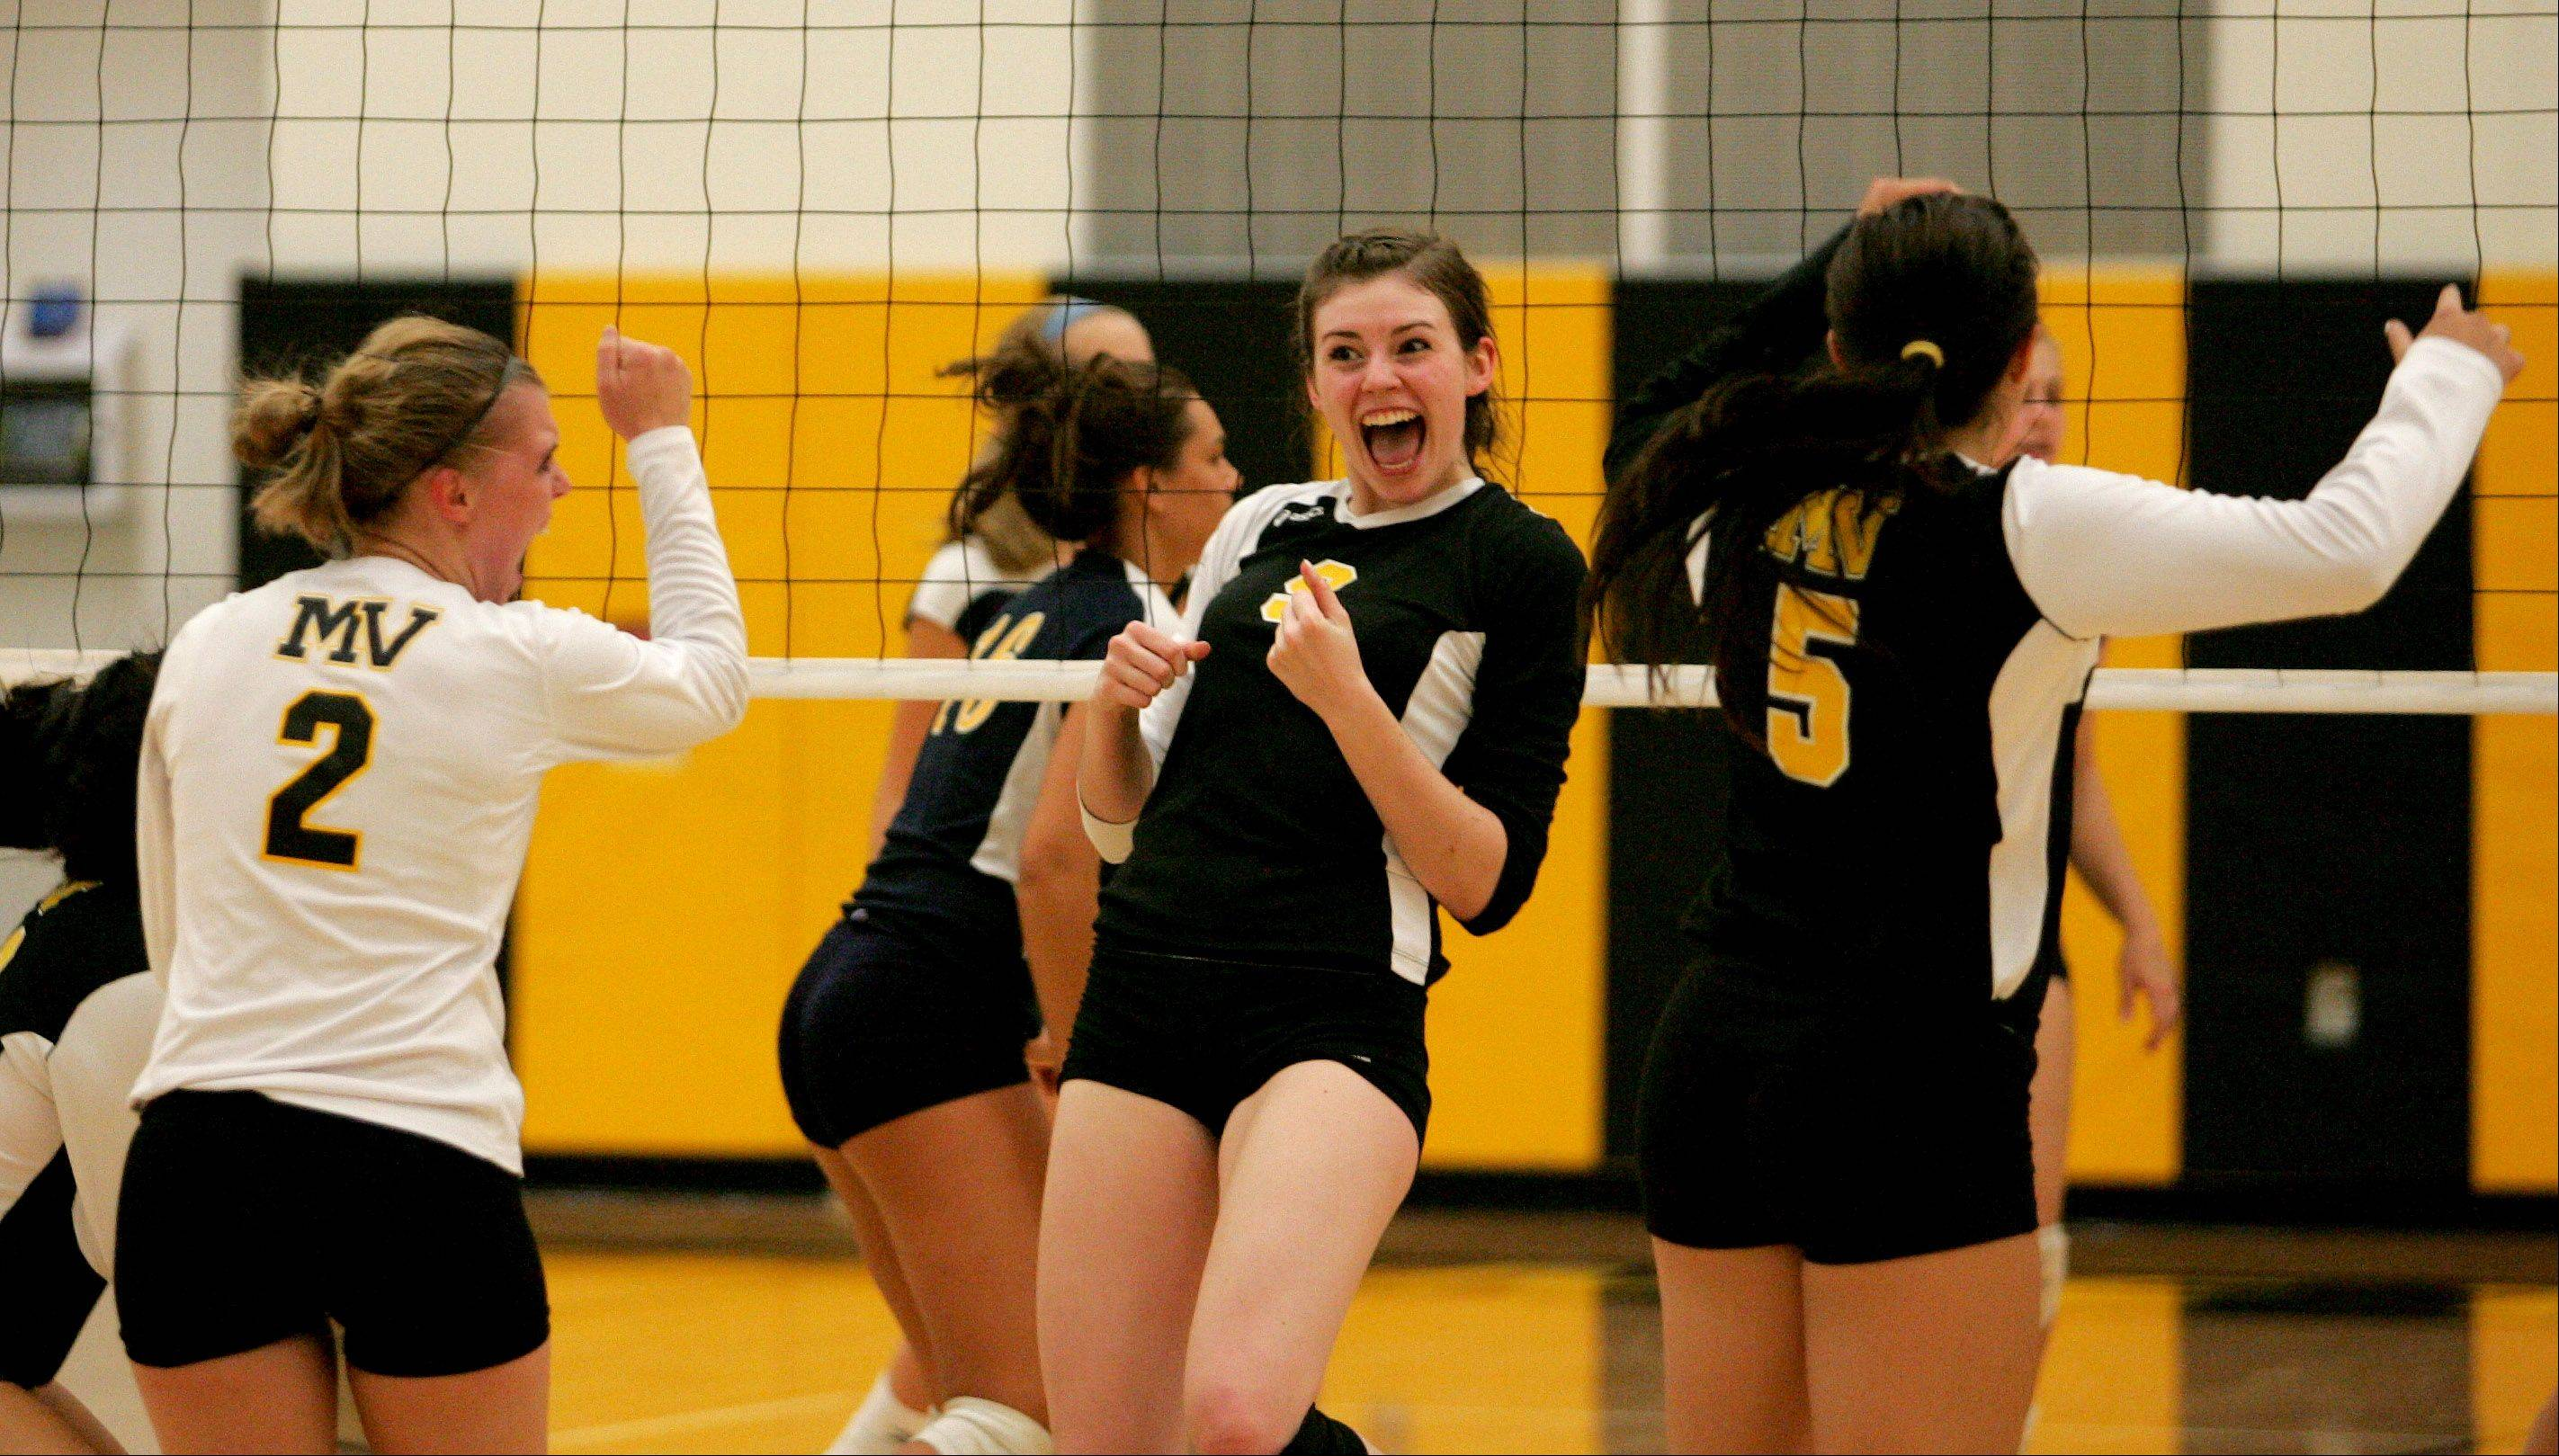 Metea Valley's Alyssa Ensminger, left, and Jessica Boddy celebrate a point won against Neuqua Valley during girls volleyball action Tuesday in Aurora.